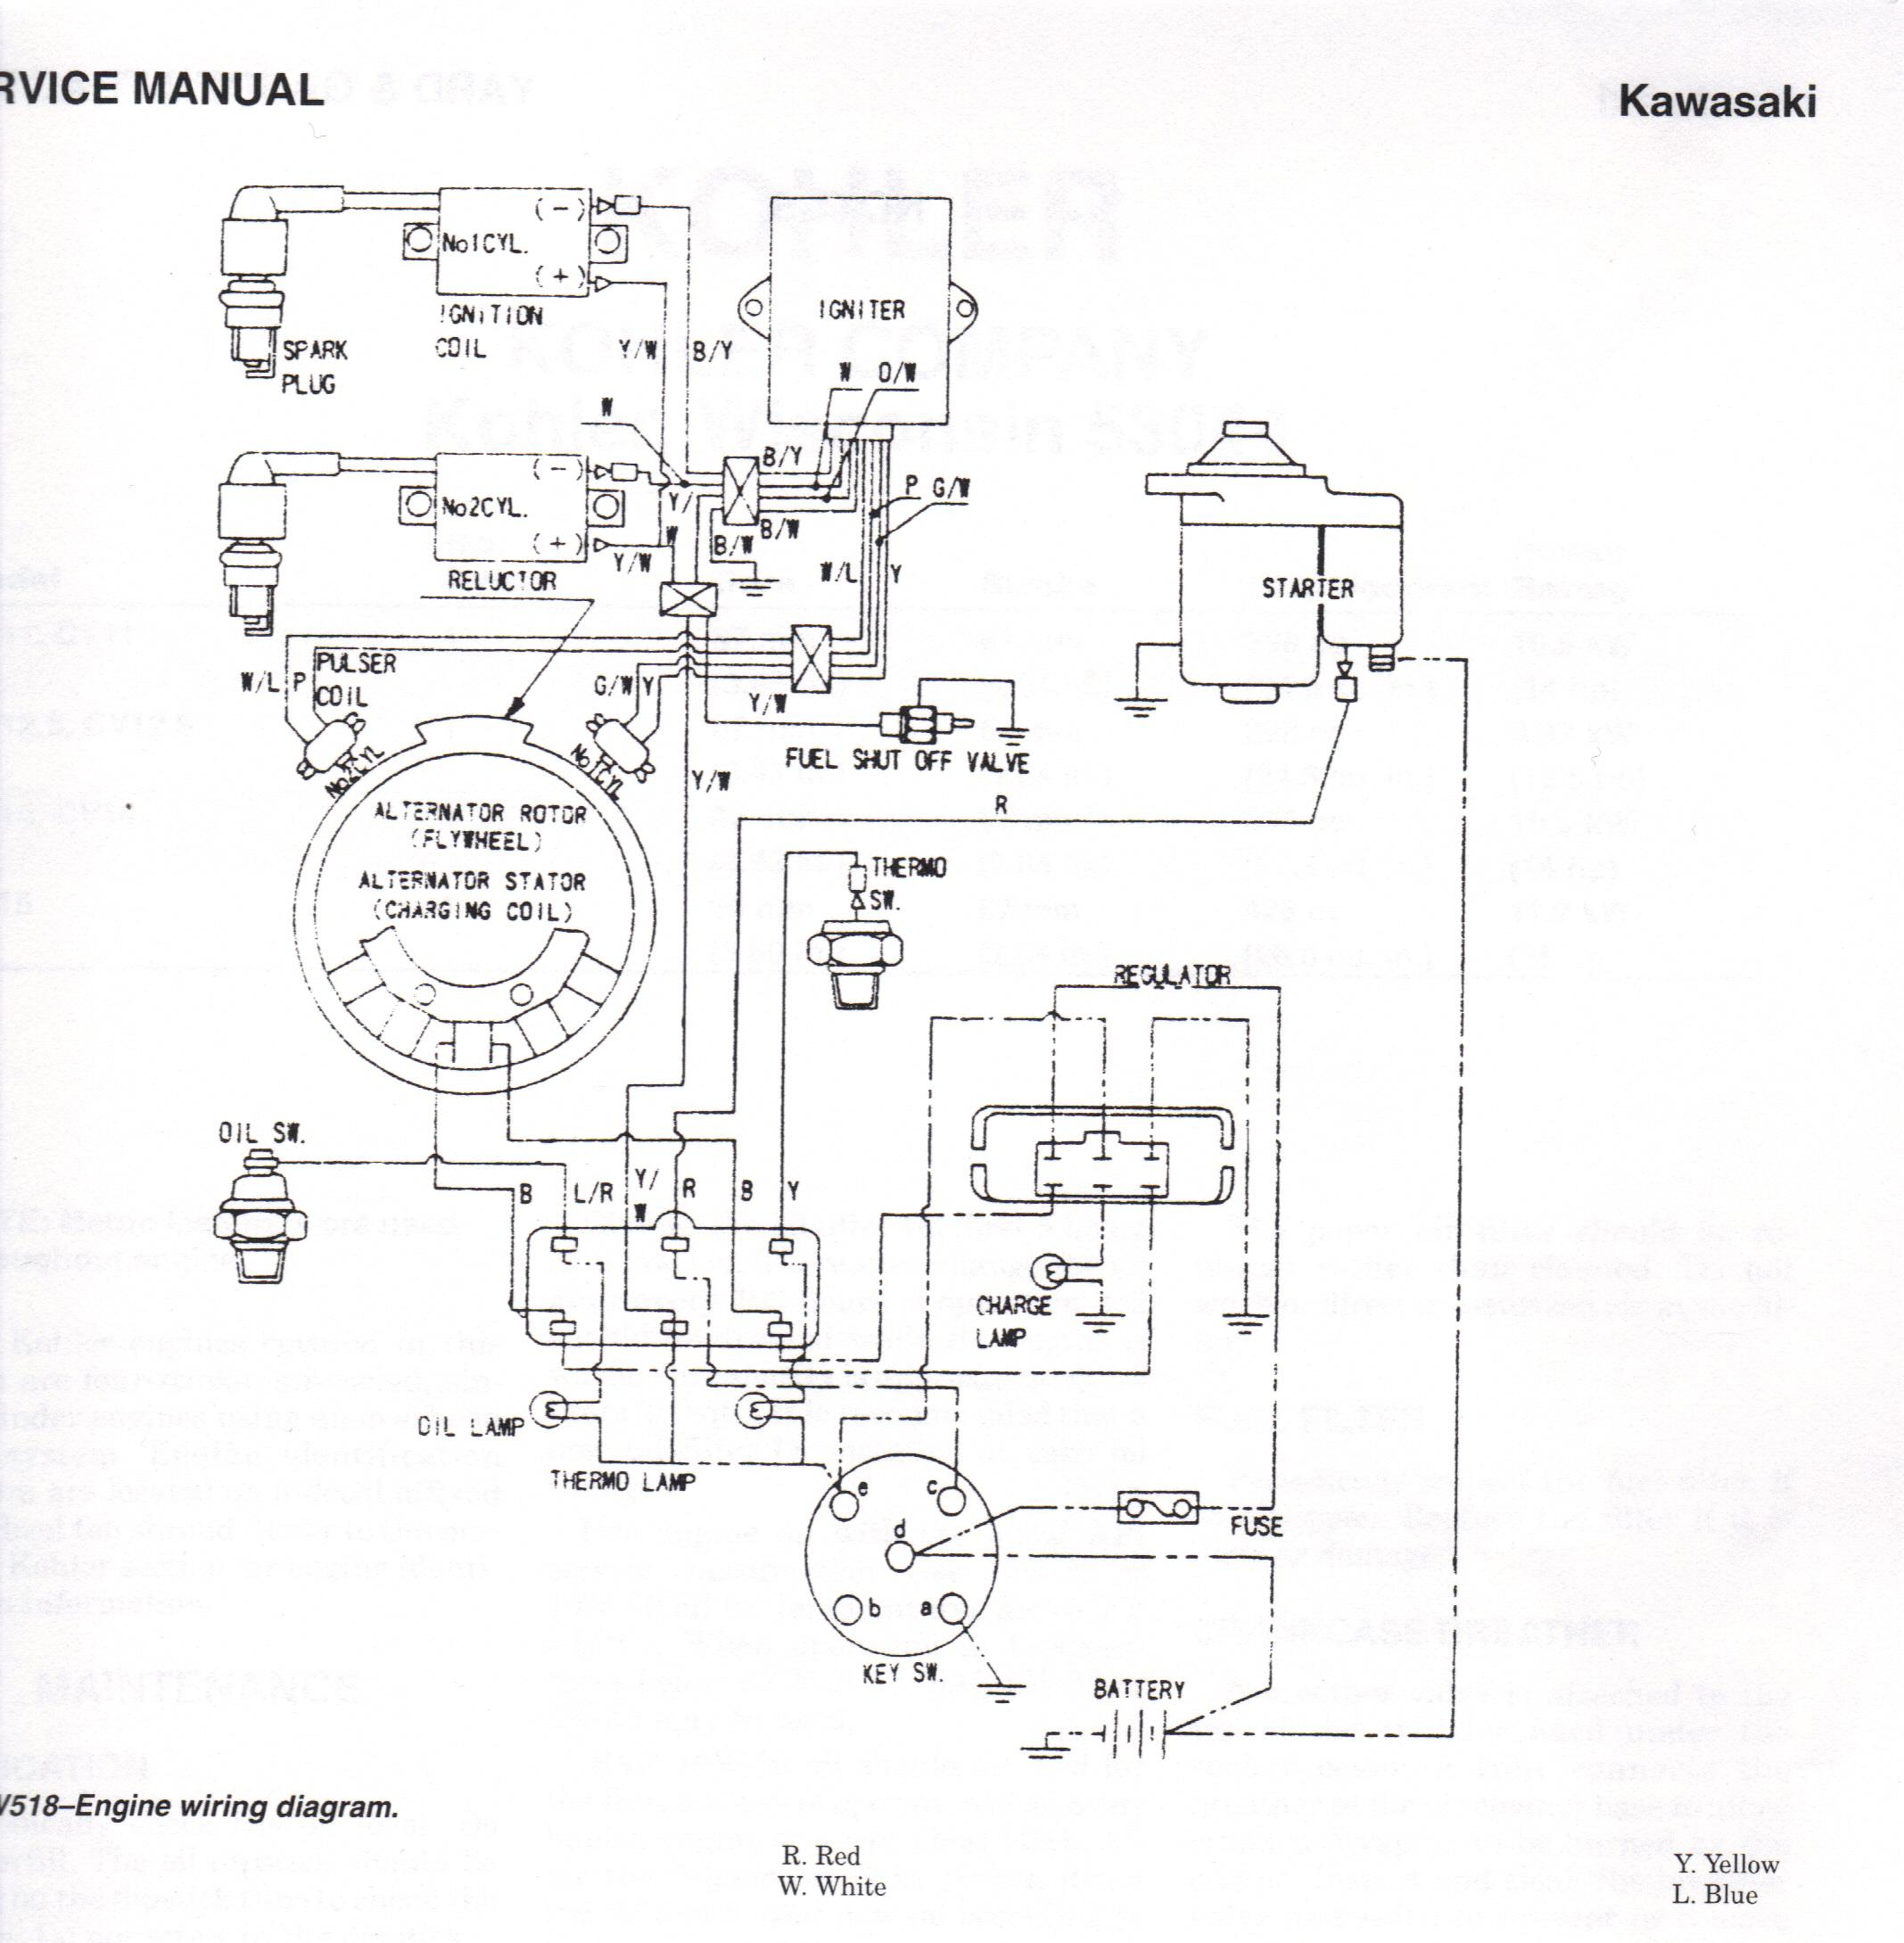 4c1fe49b a445 4b2f bfd7 5a83793d1e37_Kawasaki+wiring have jd 345 with kawasaki fd590v engine back fired when last john deere 425 fuel pump wiring diagram at alyssarenee.co